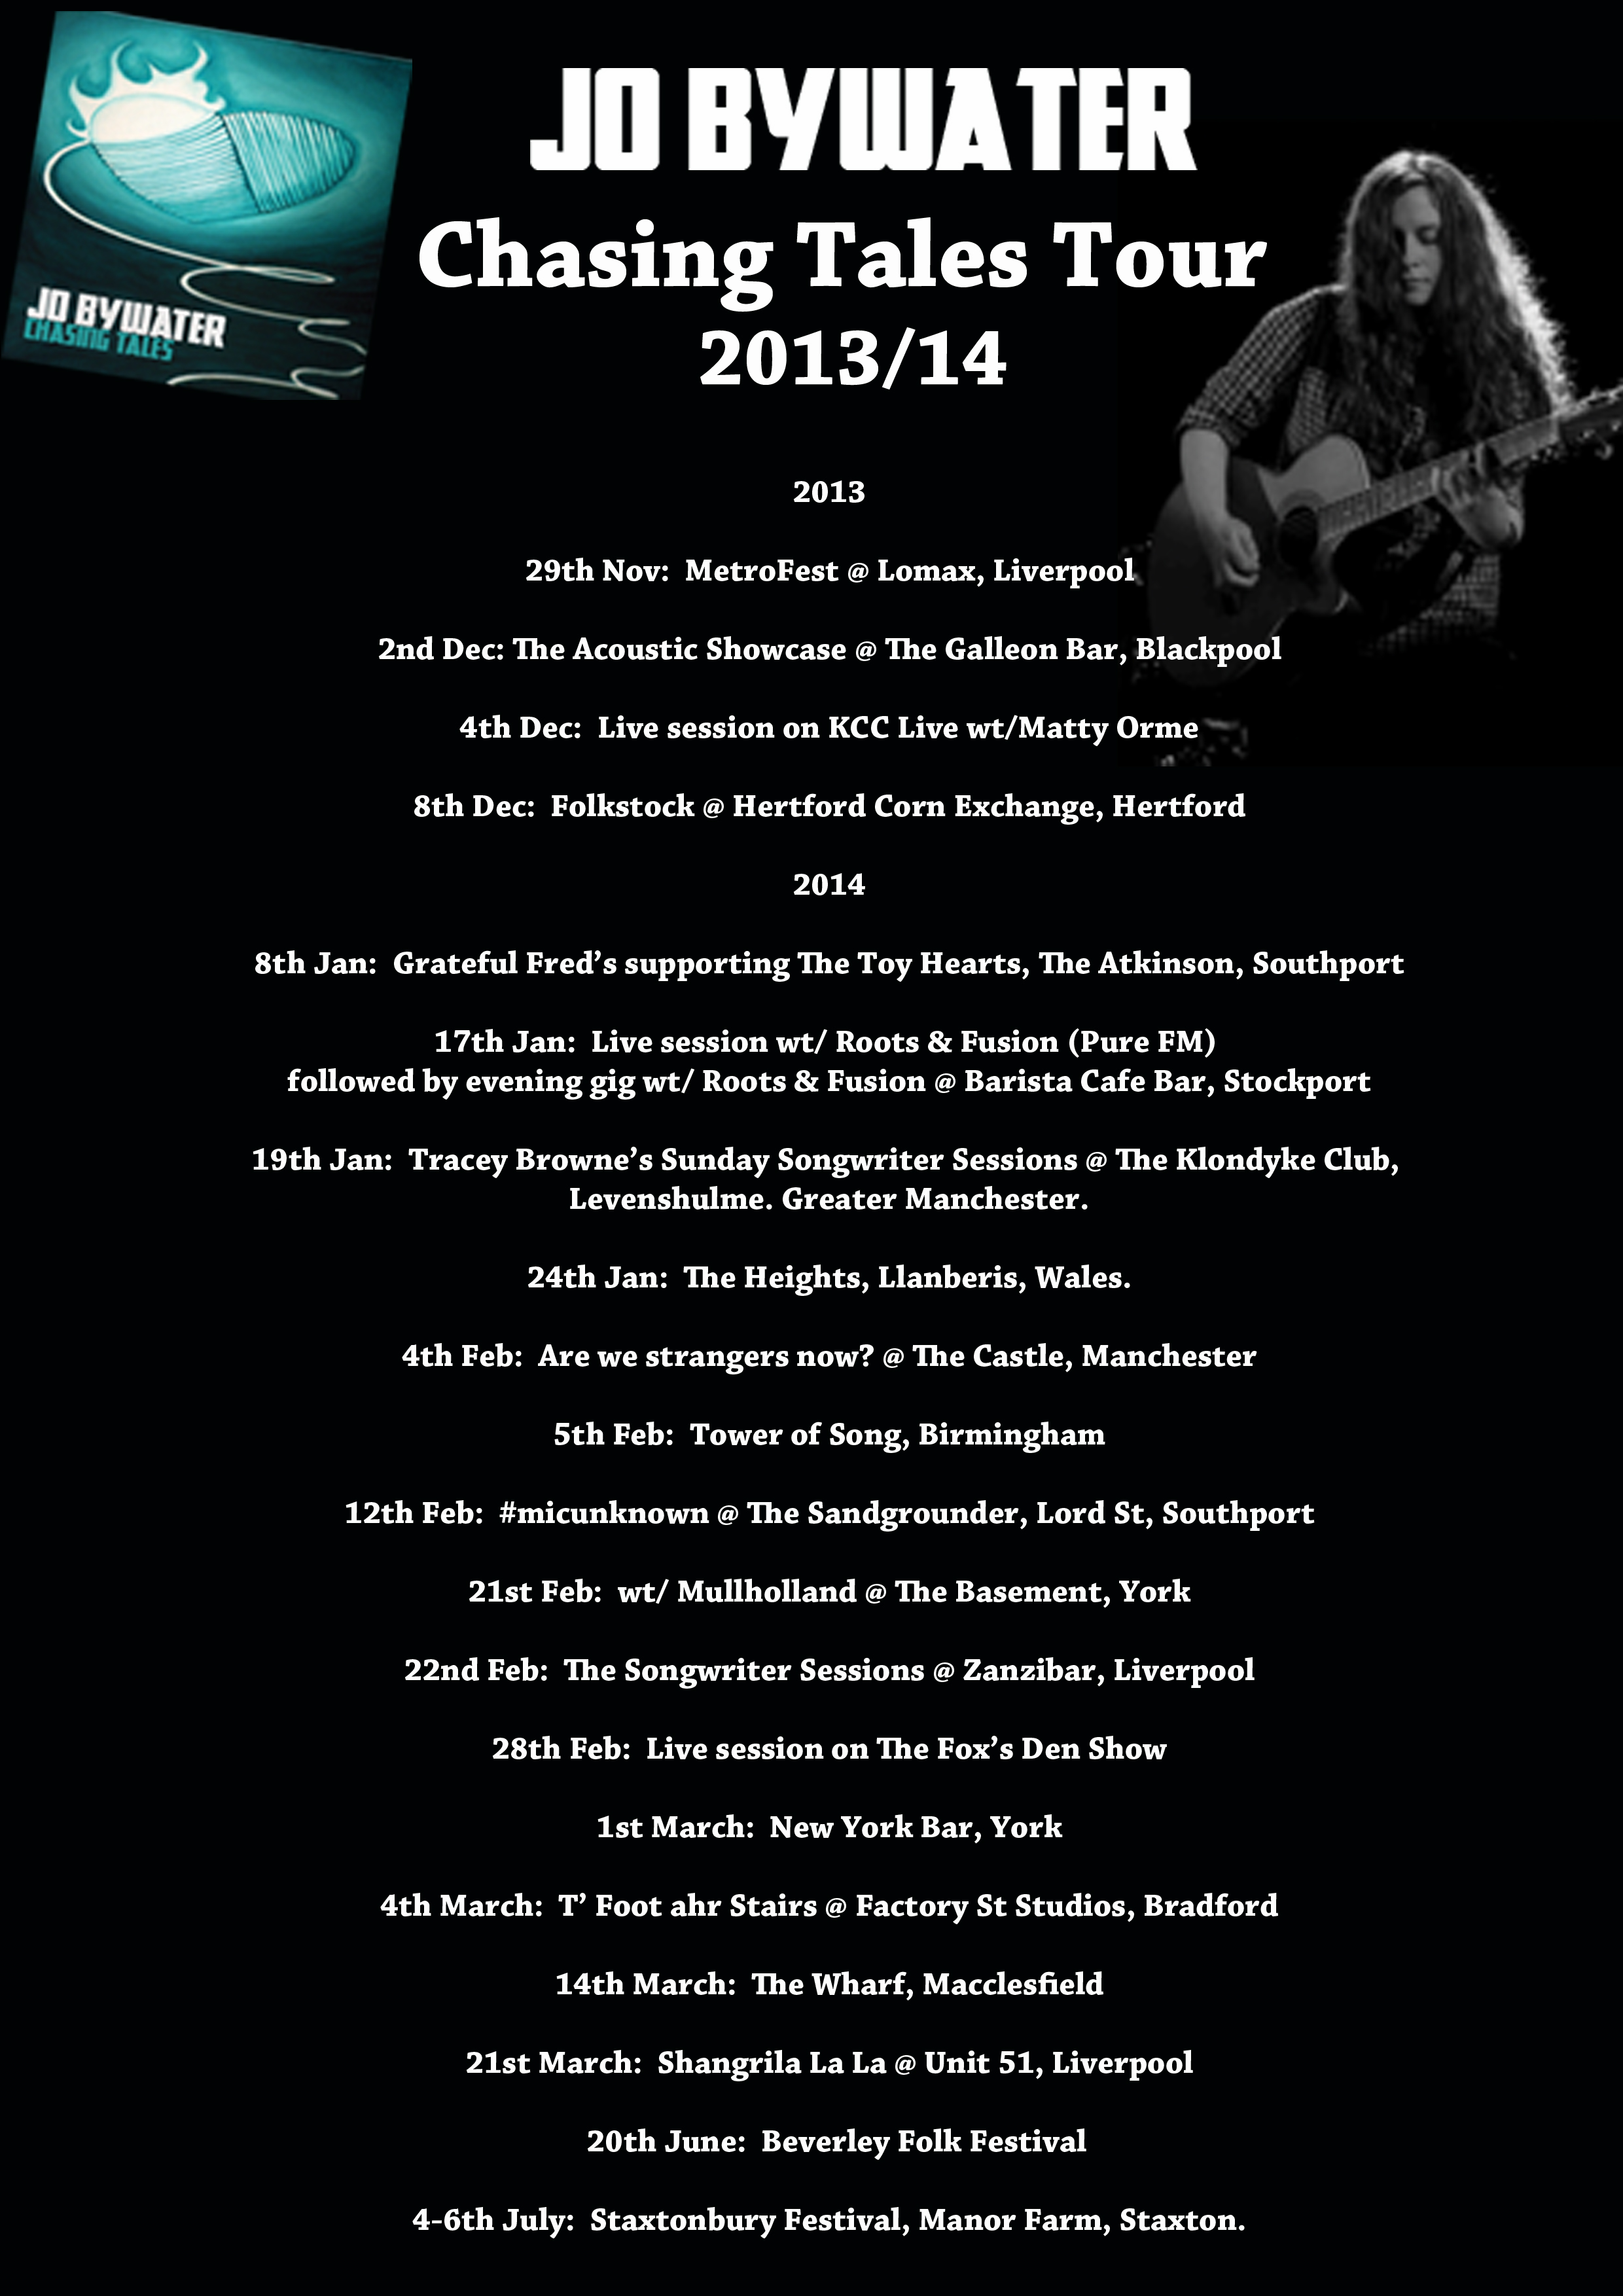 2013-14 Chasing Tales gigs - more to come